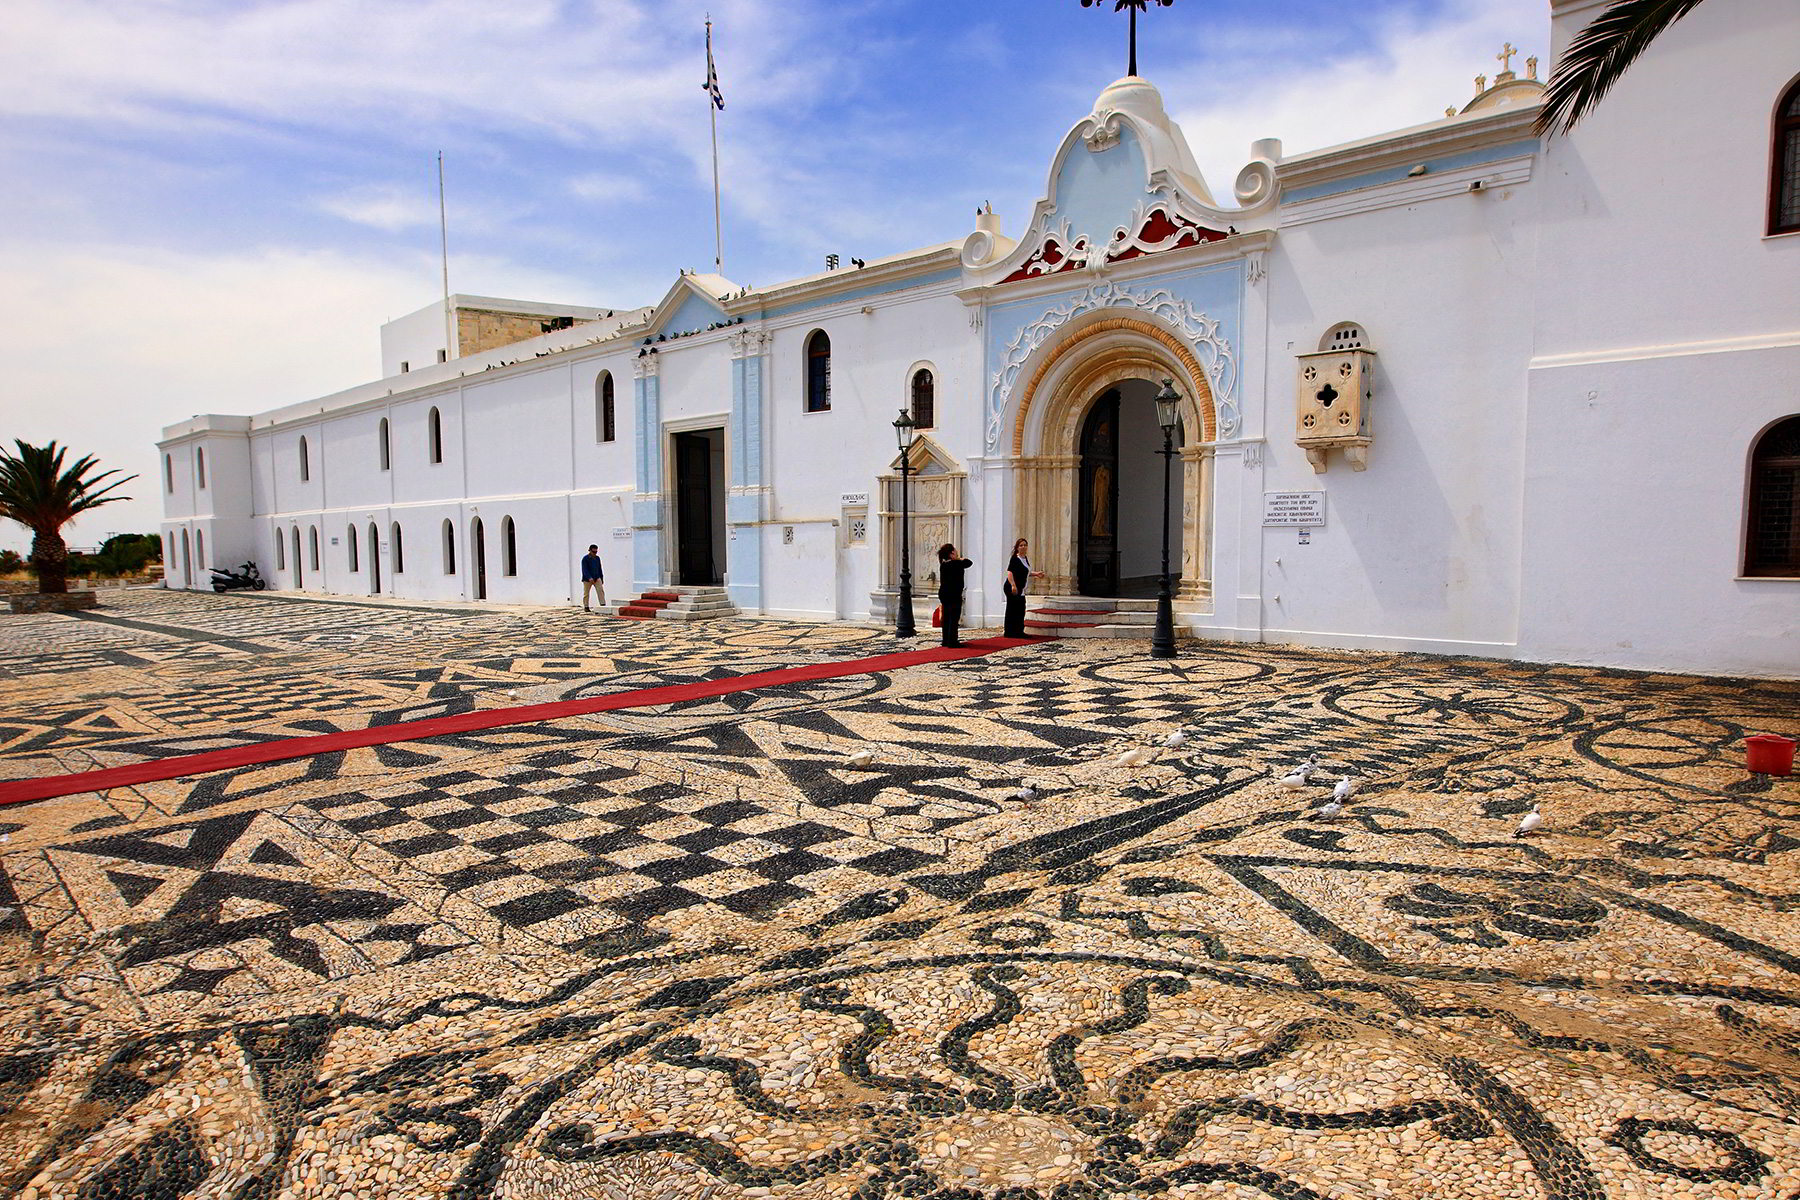 Pebble floor surface in Tinos church